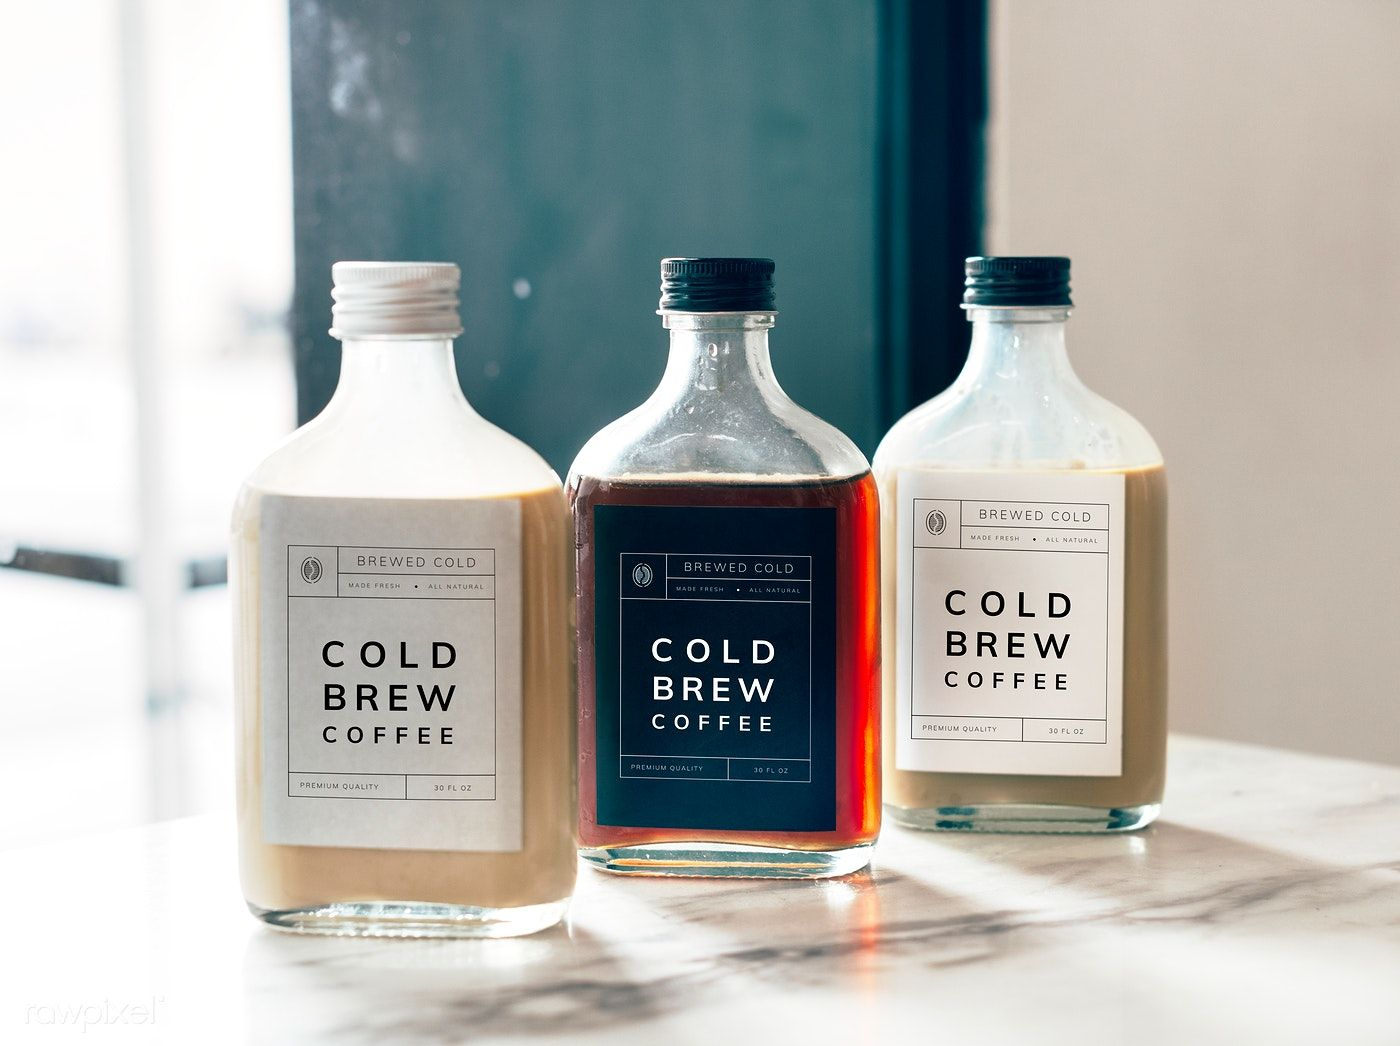 Cold Brew Coffee Bottle Mockup Design Free Image By Rawpixel Com Cold Brew Packaging Drinks Packaging Design Bottle Design Packaging